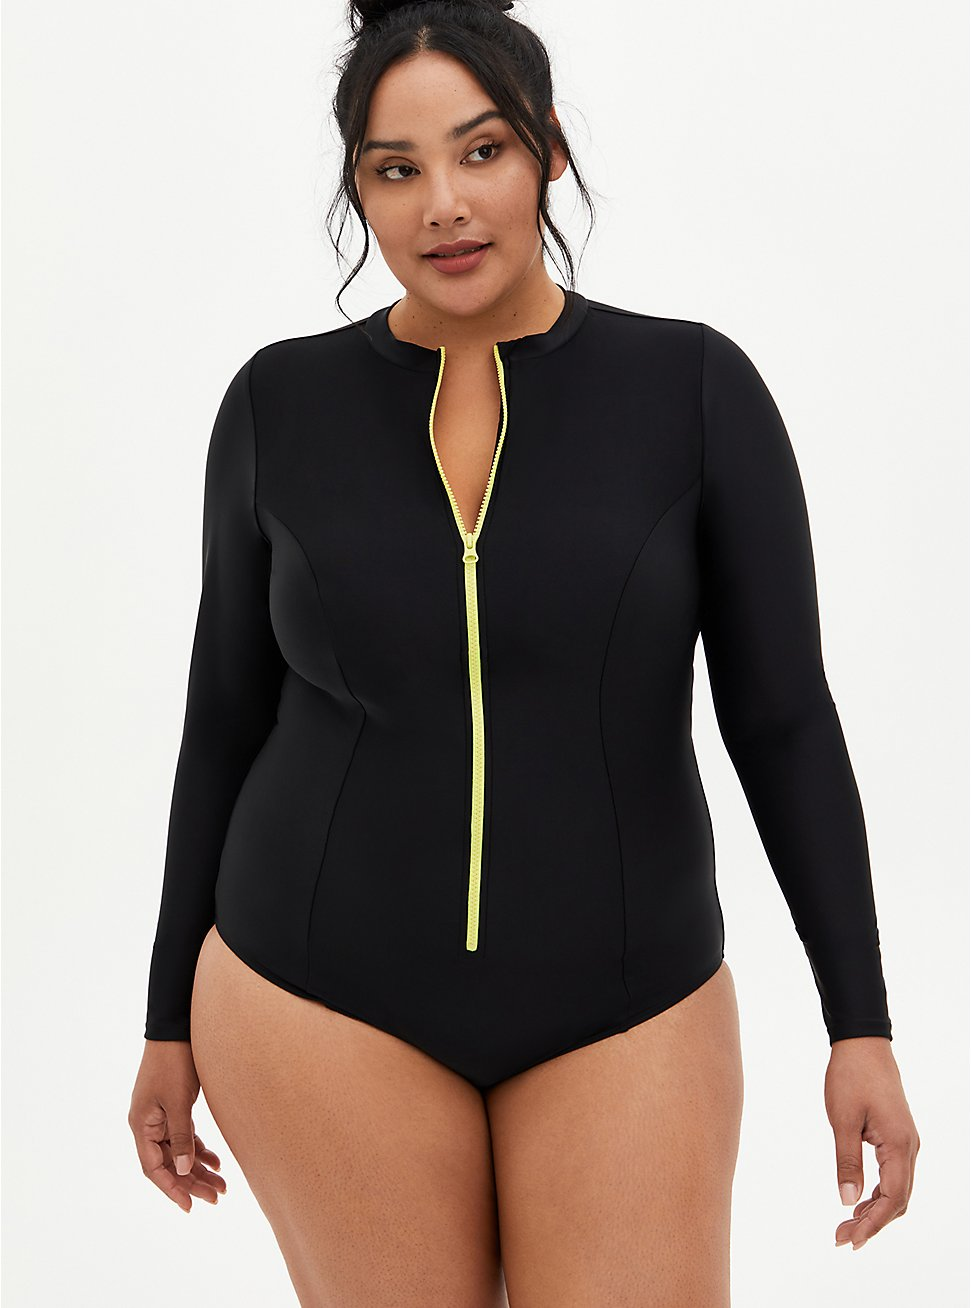 Black Long Sleeve One-Piece Active Swimsuit, DEEP BLACK, hi-res